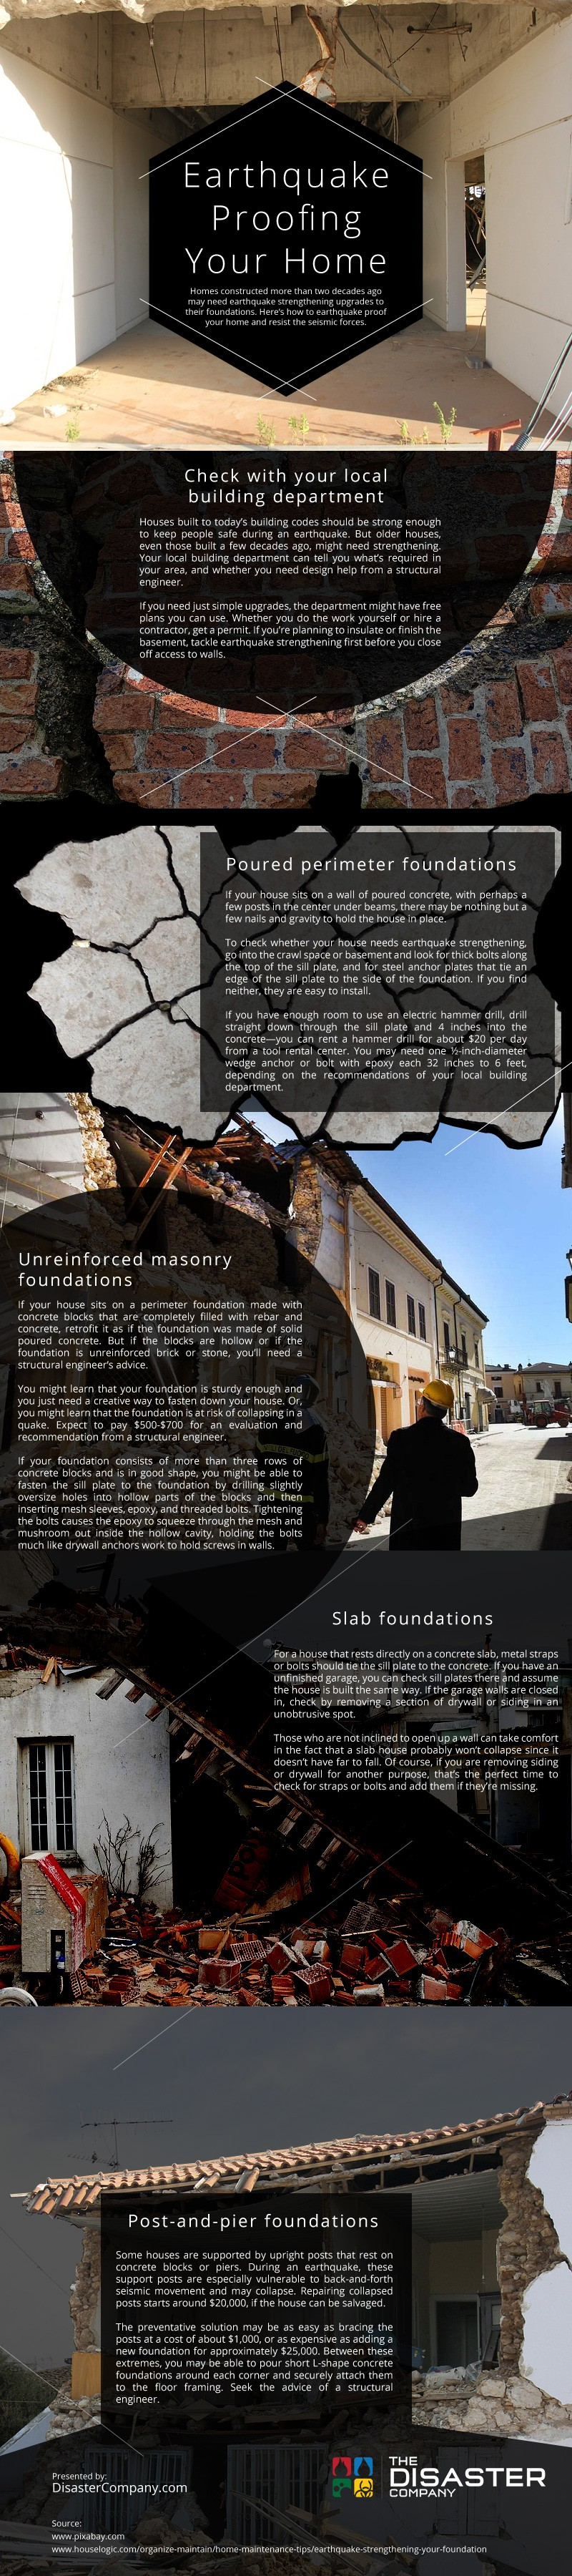 Earthquake Proofing your Home [infographic]